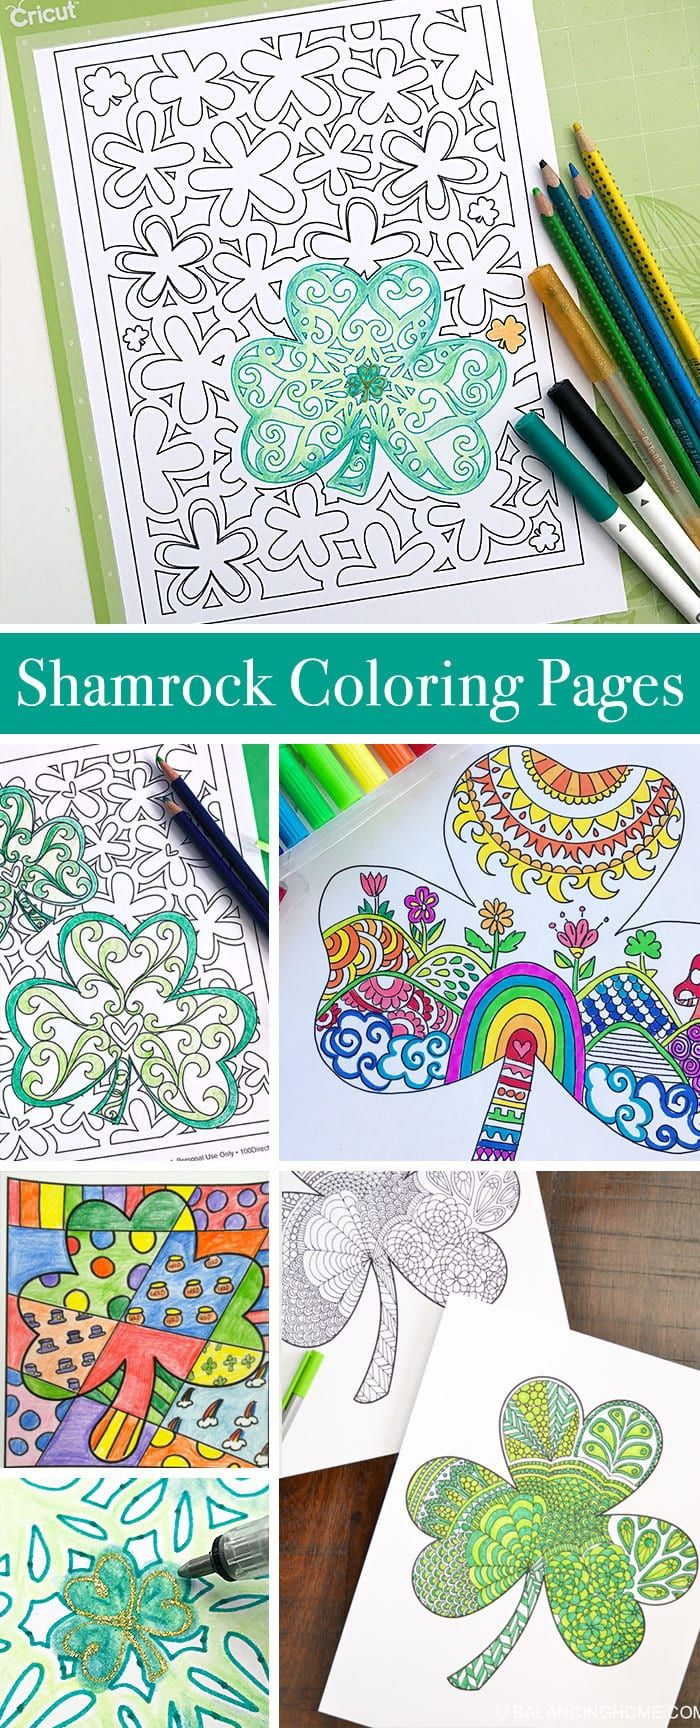 Free Printable St. Patrick's Day Coloring Pages - Oh My Creative   1728x700